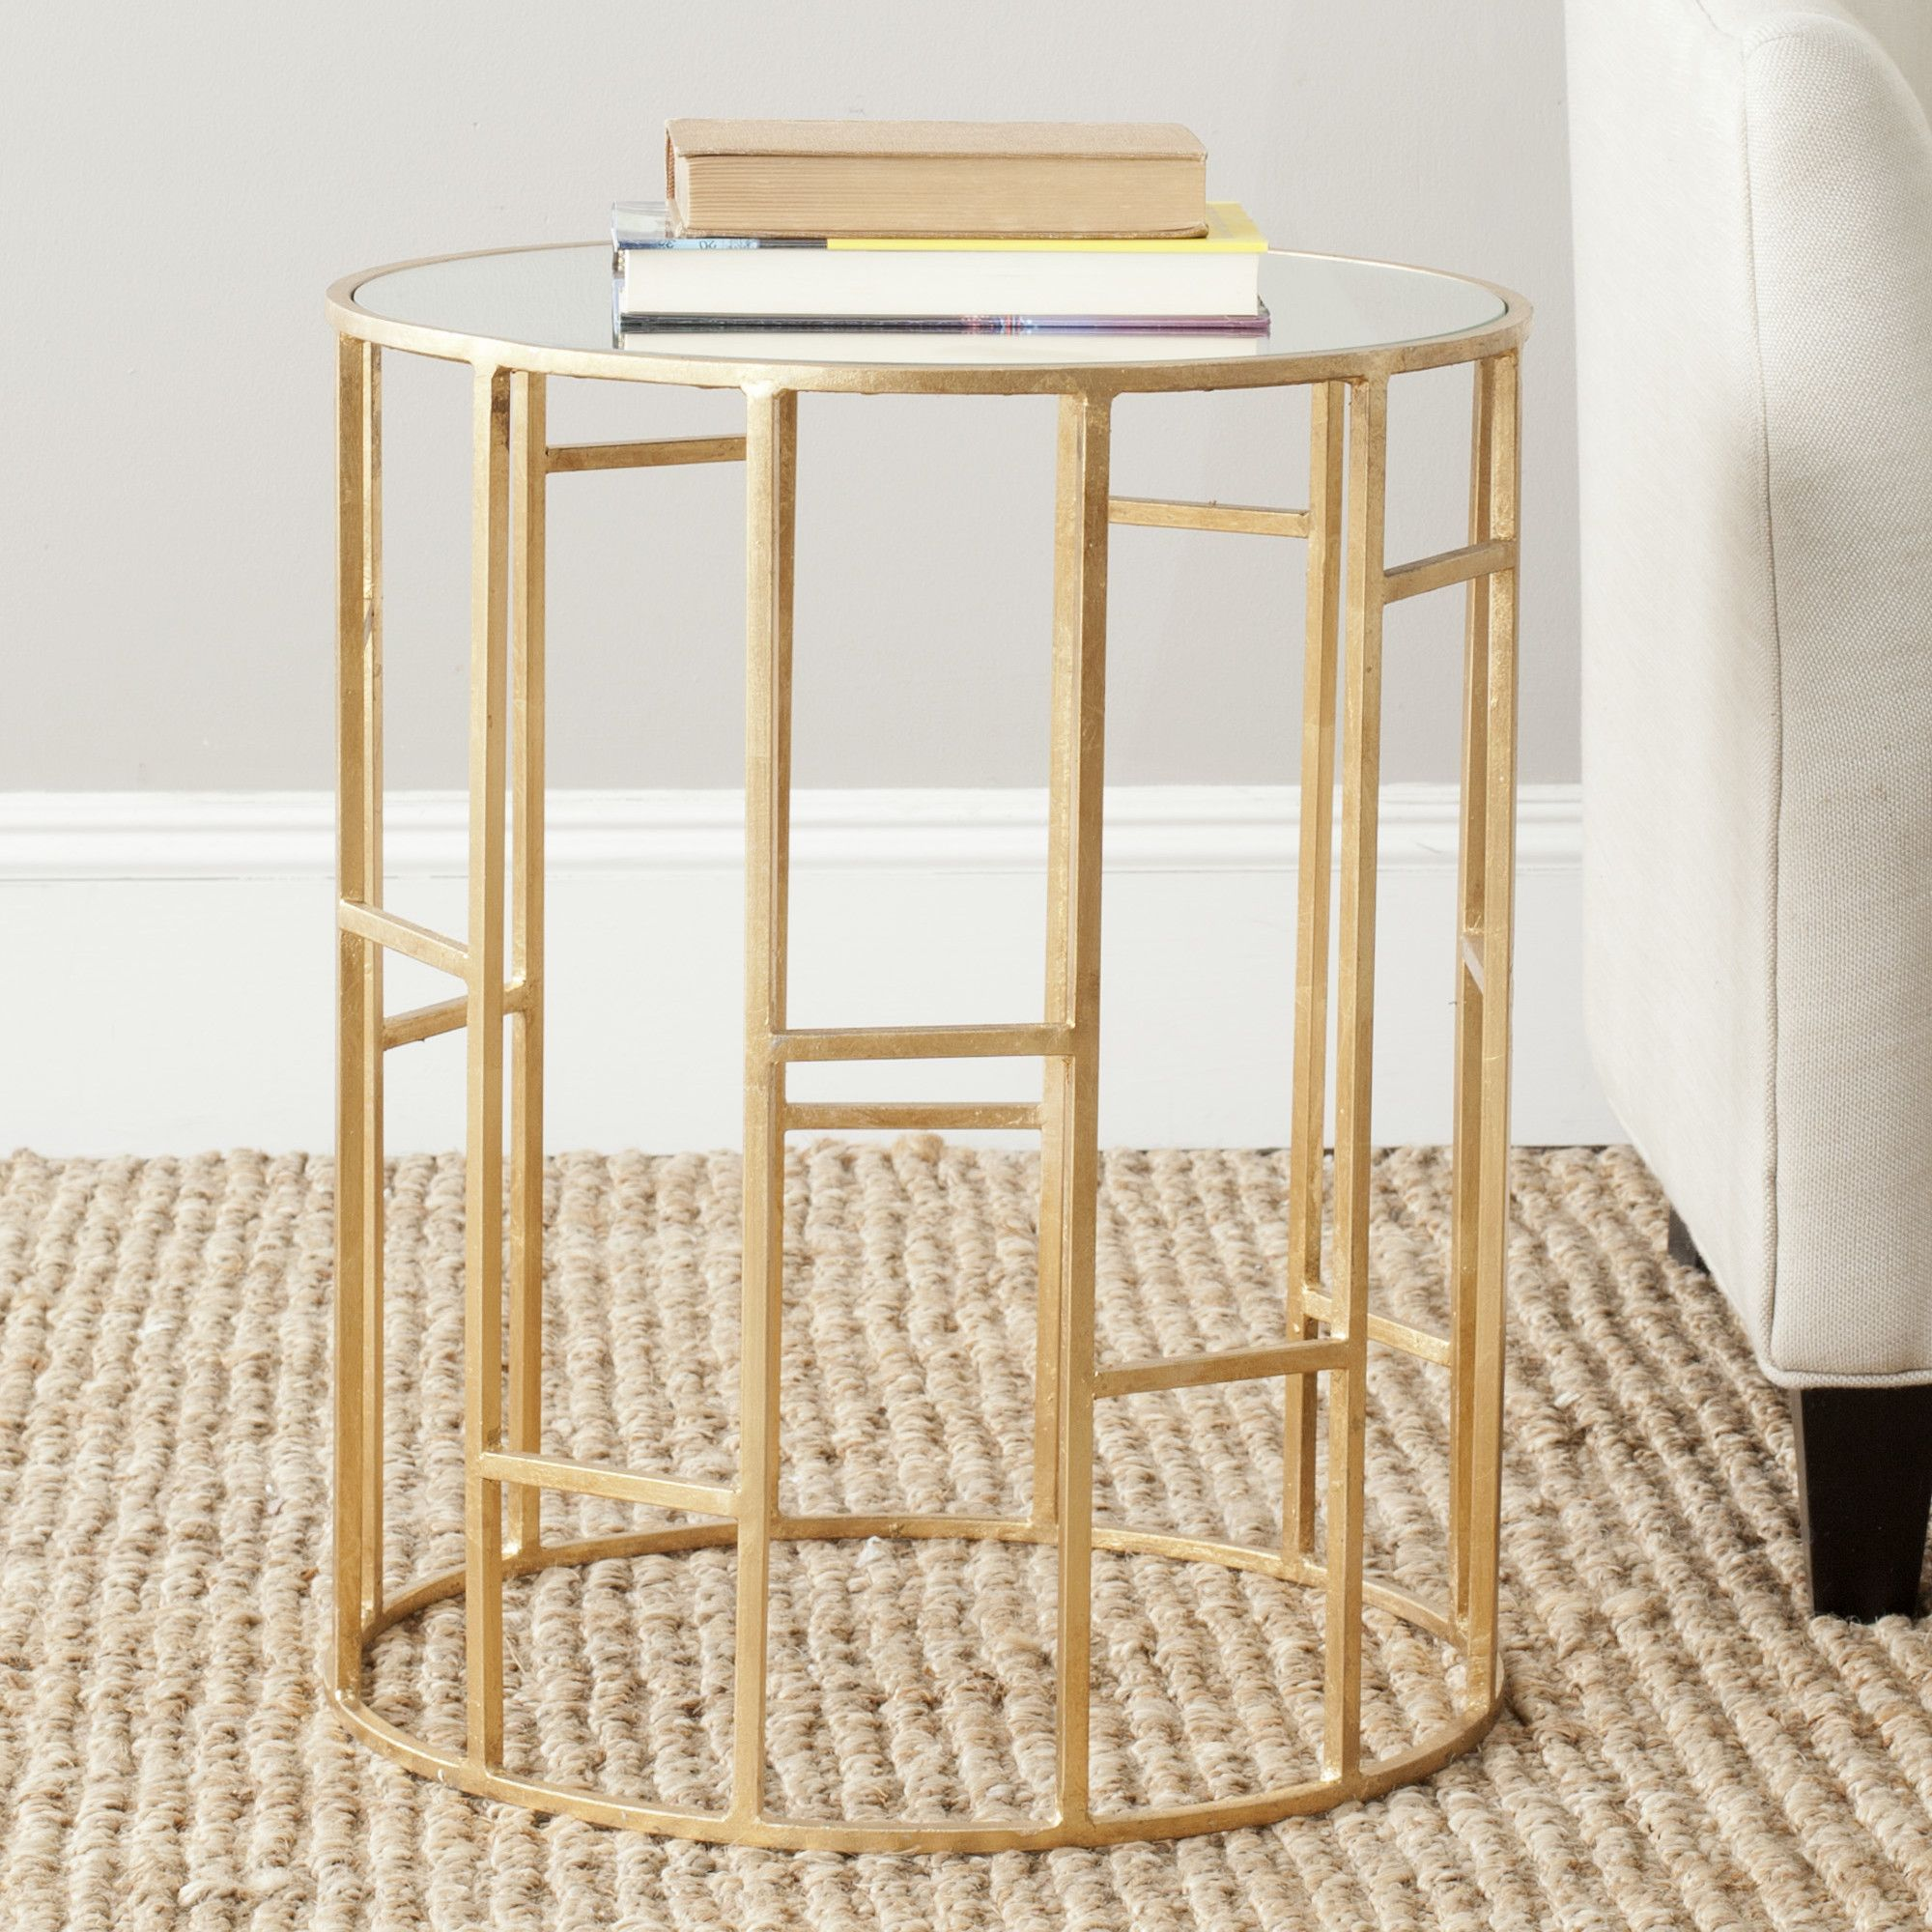 for end tables match every style and budget enjoy hawthorne glass top accent table bronze free shipping round living room high patio with umbrella fall placemats napkins